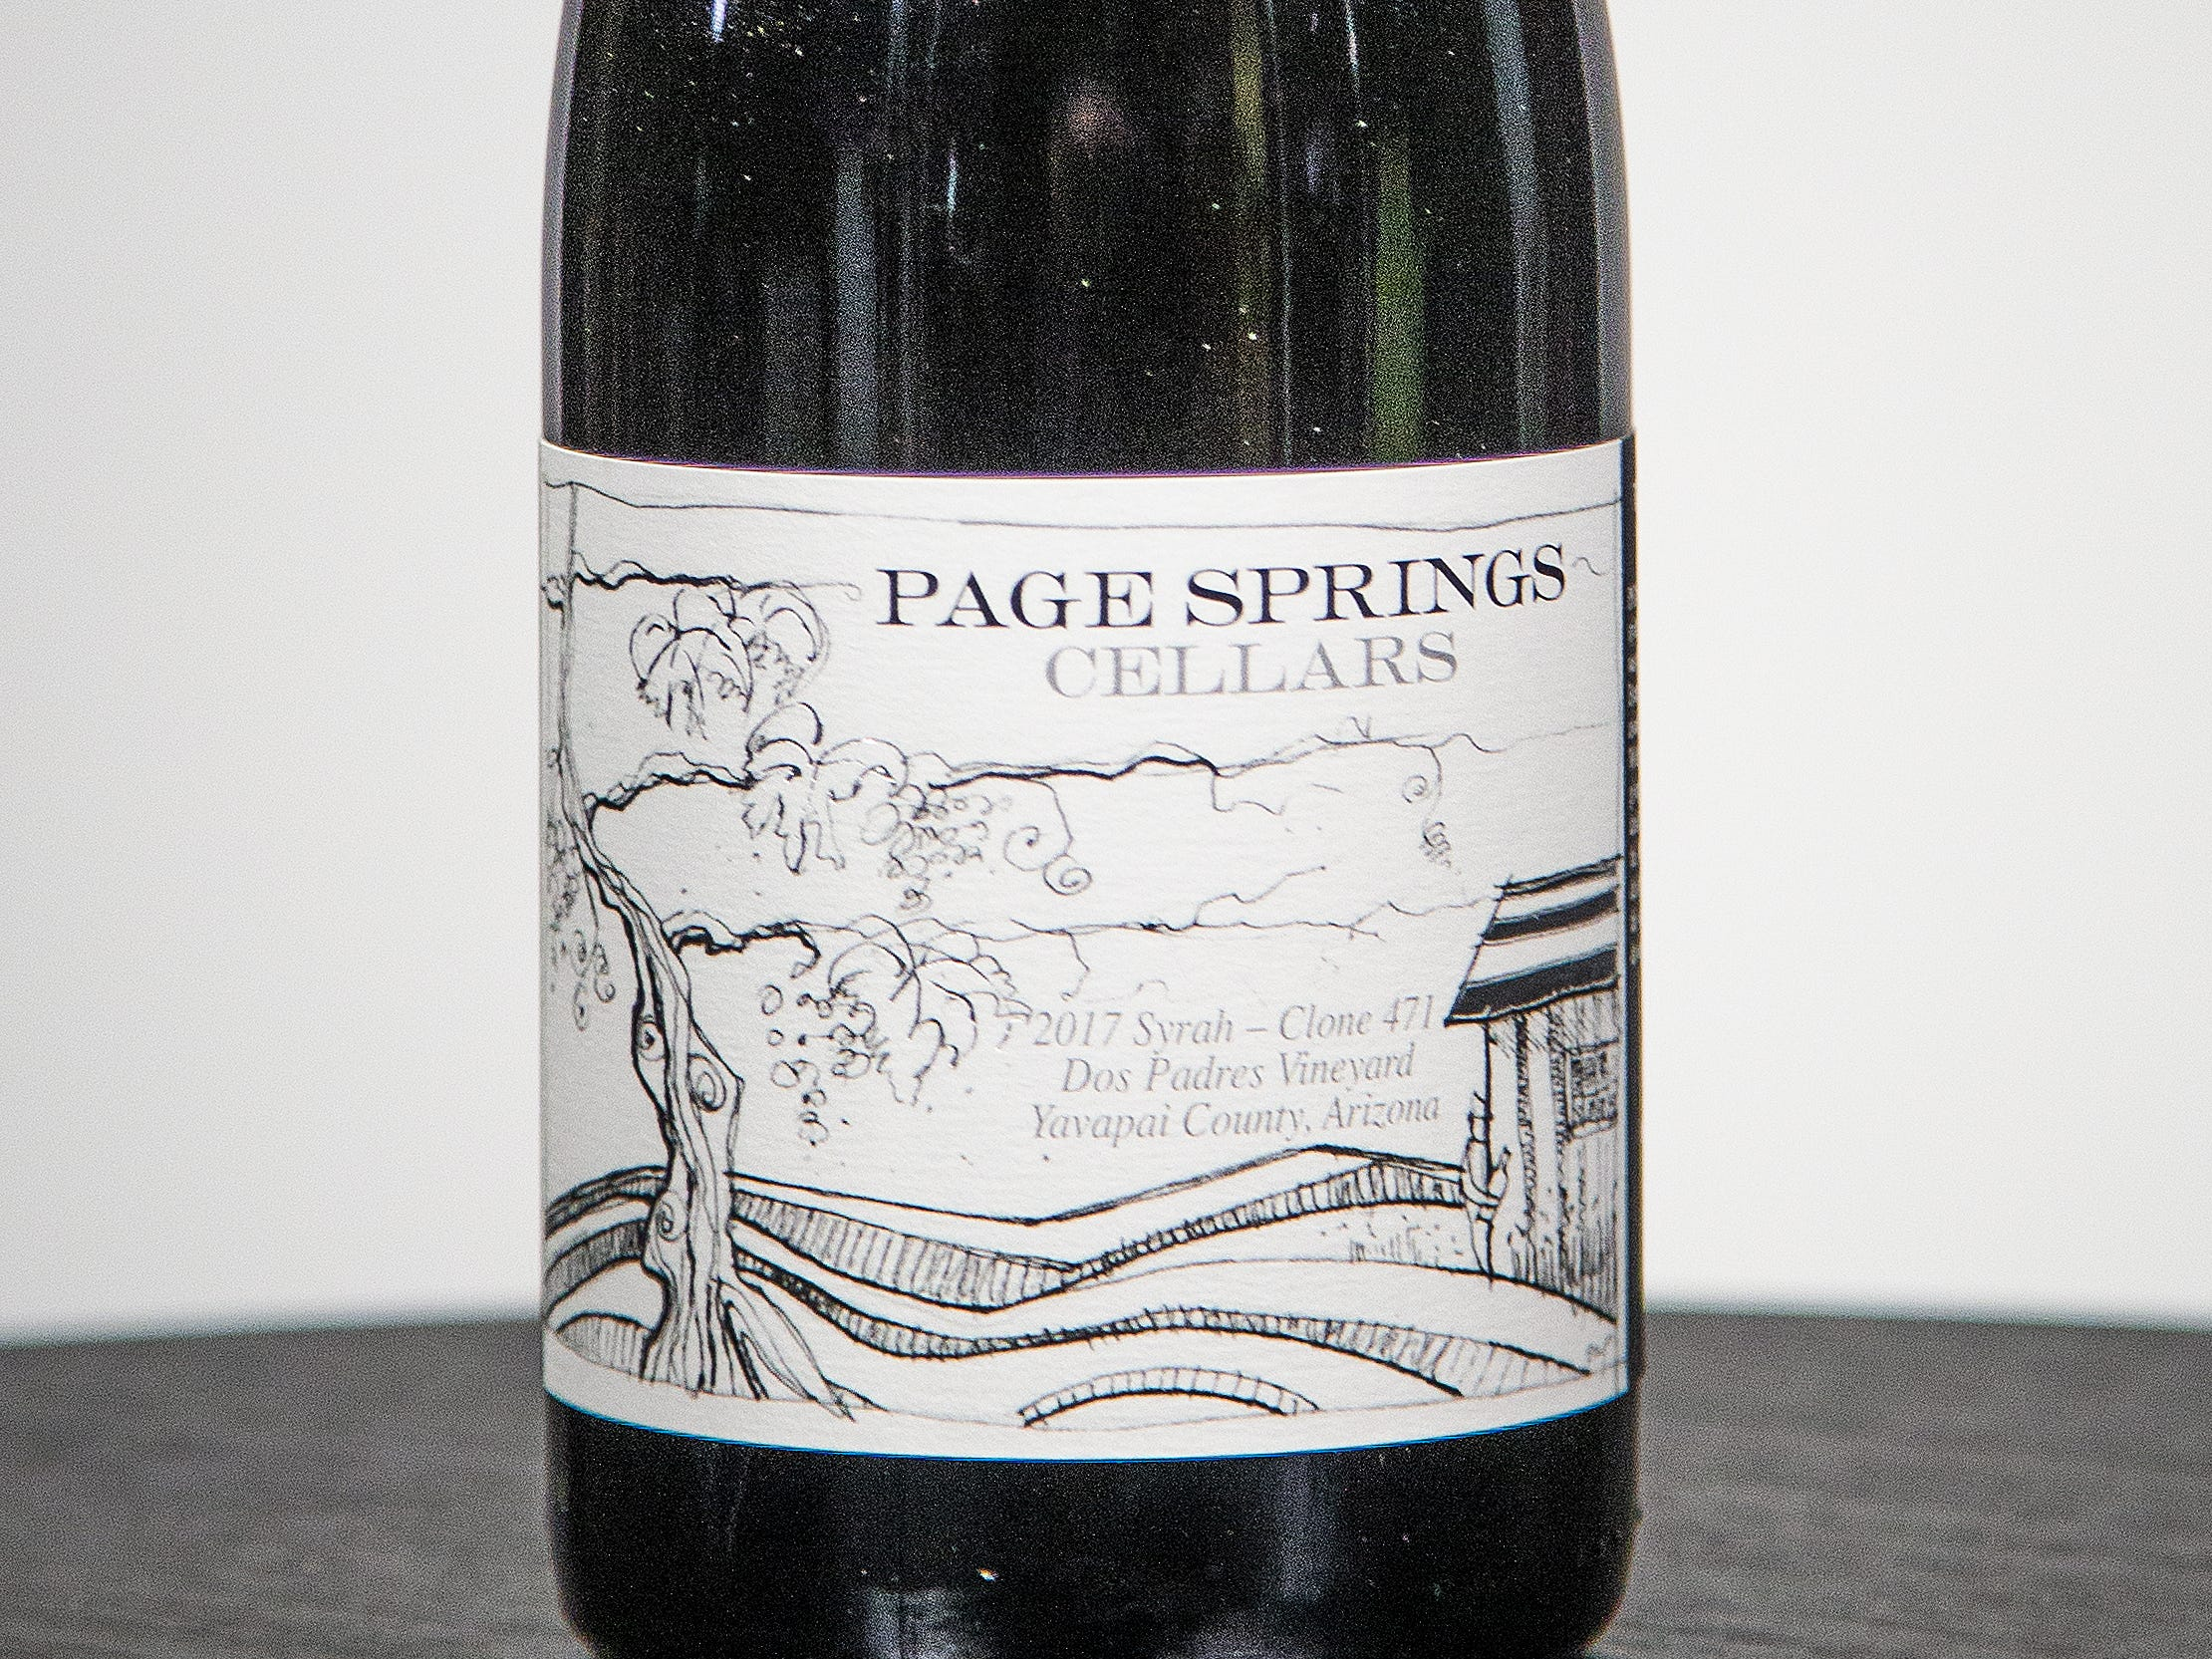 Best Syrah: Page Springs Cellars 2017 Dos Padres Vineyard Syrah Clone 471.